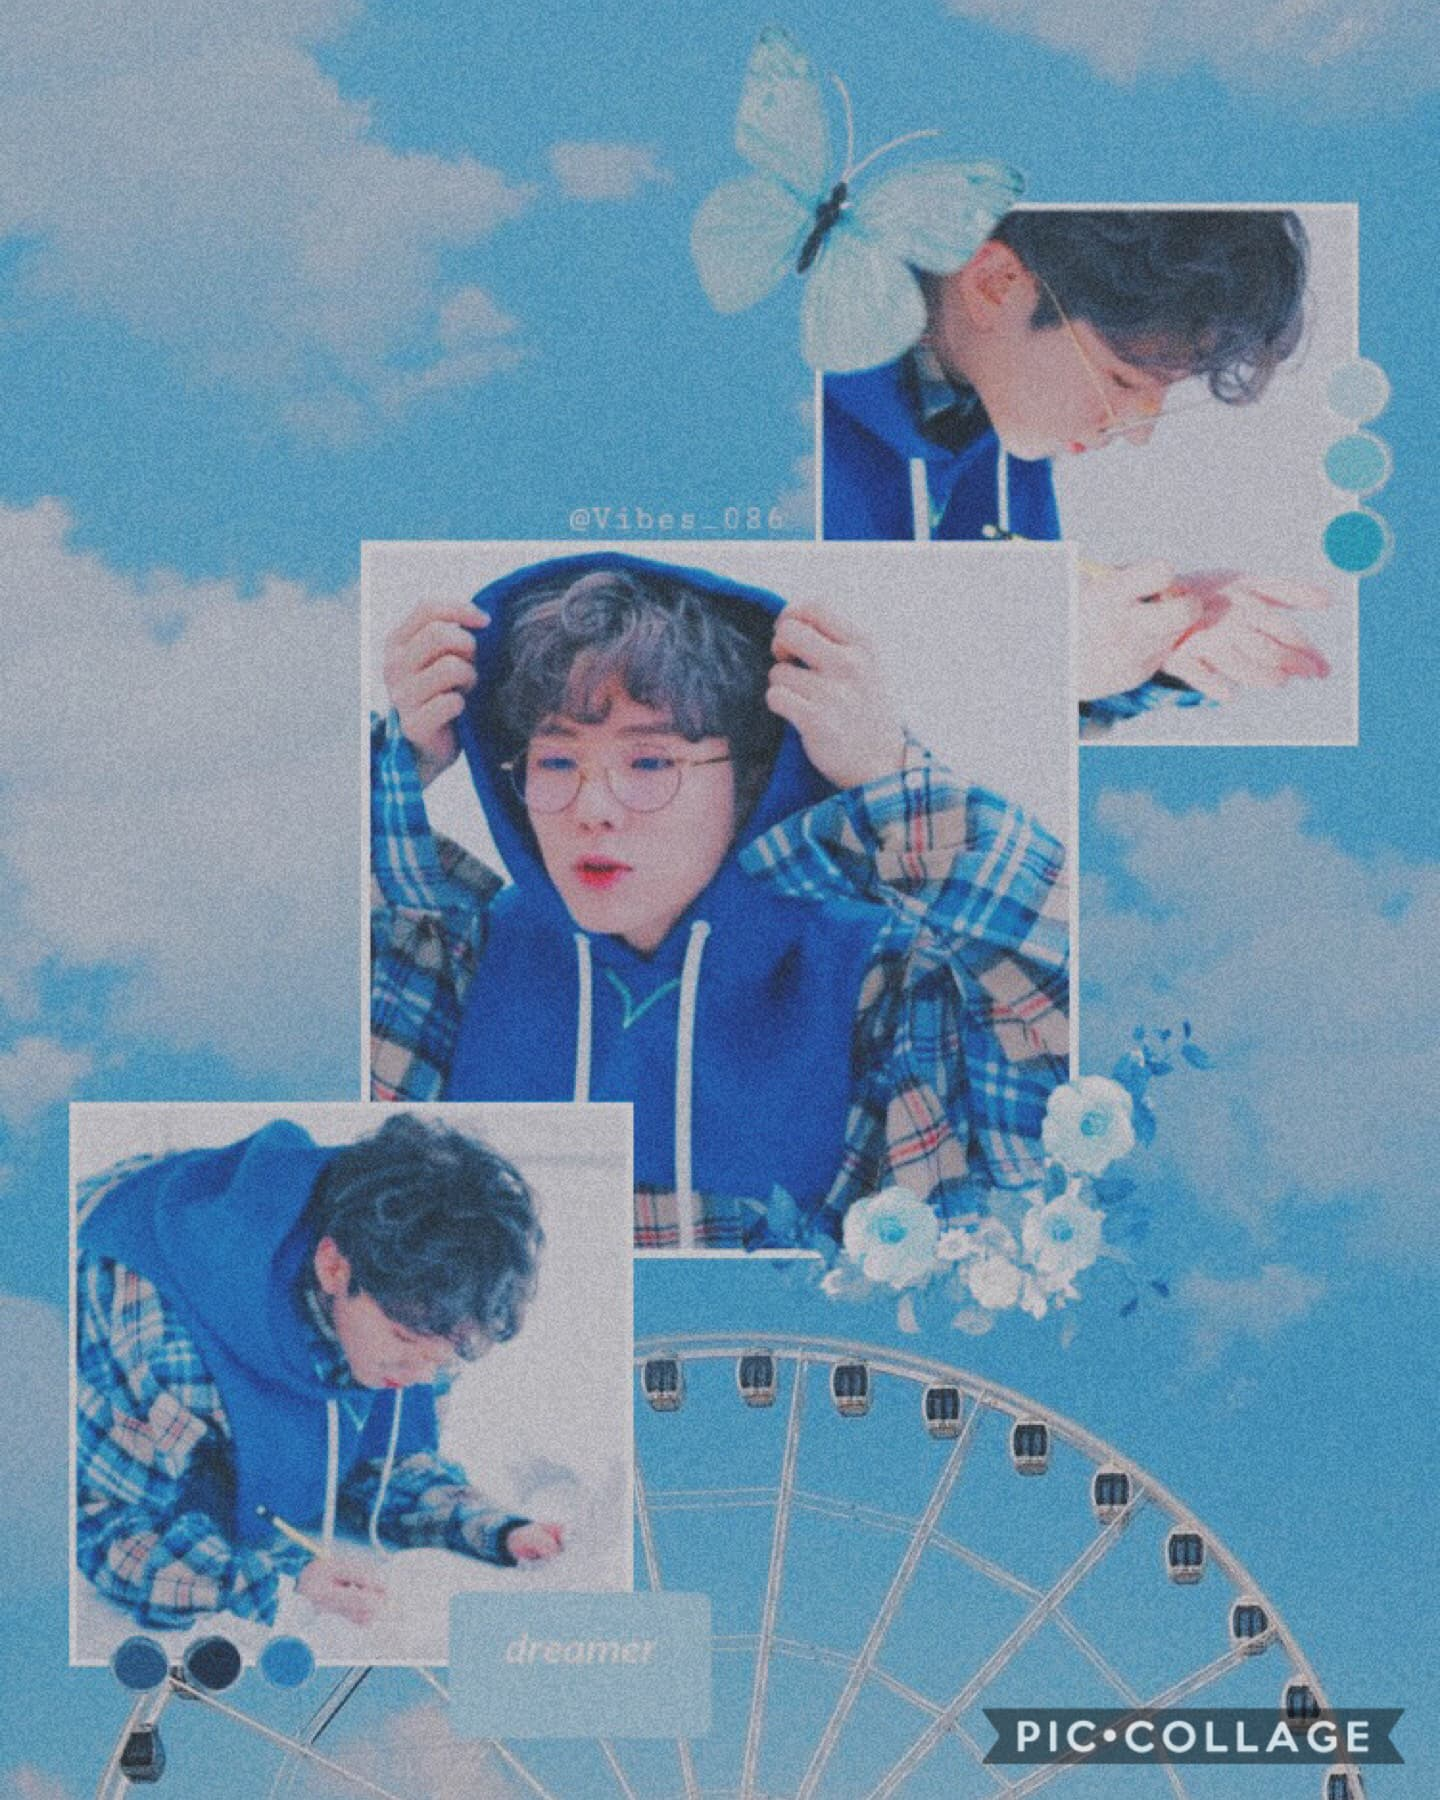 ~☁️~ Hey how is everyone?  Should I do a competition soon or kpop games?  QOTD:Favourite colour?  AOTD: Blue 💙